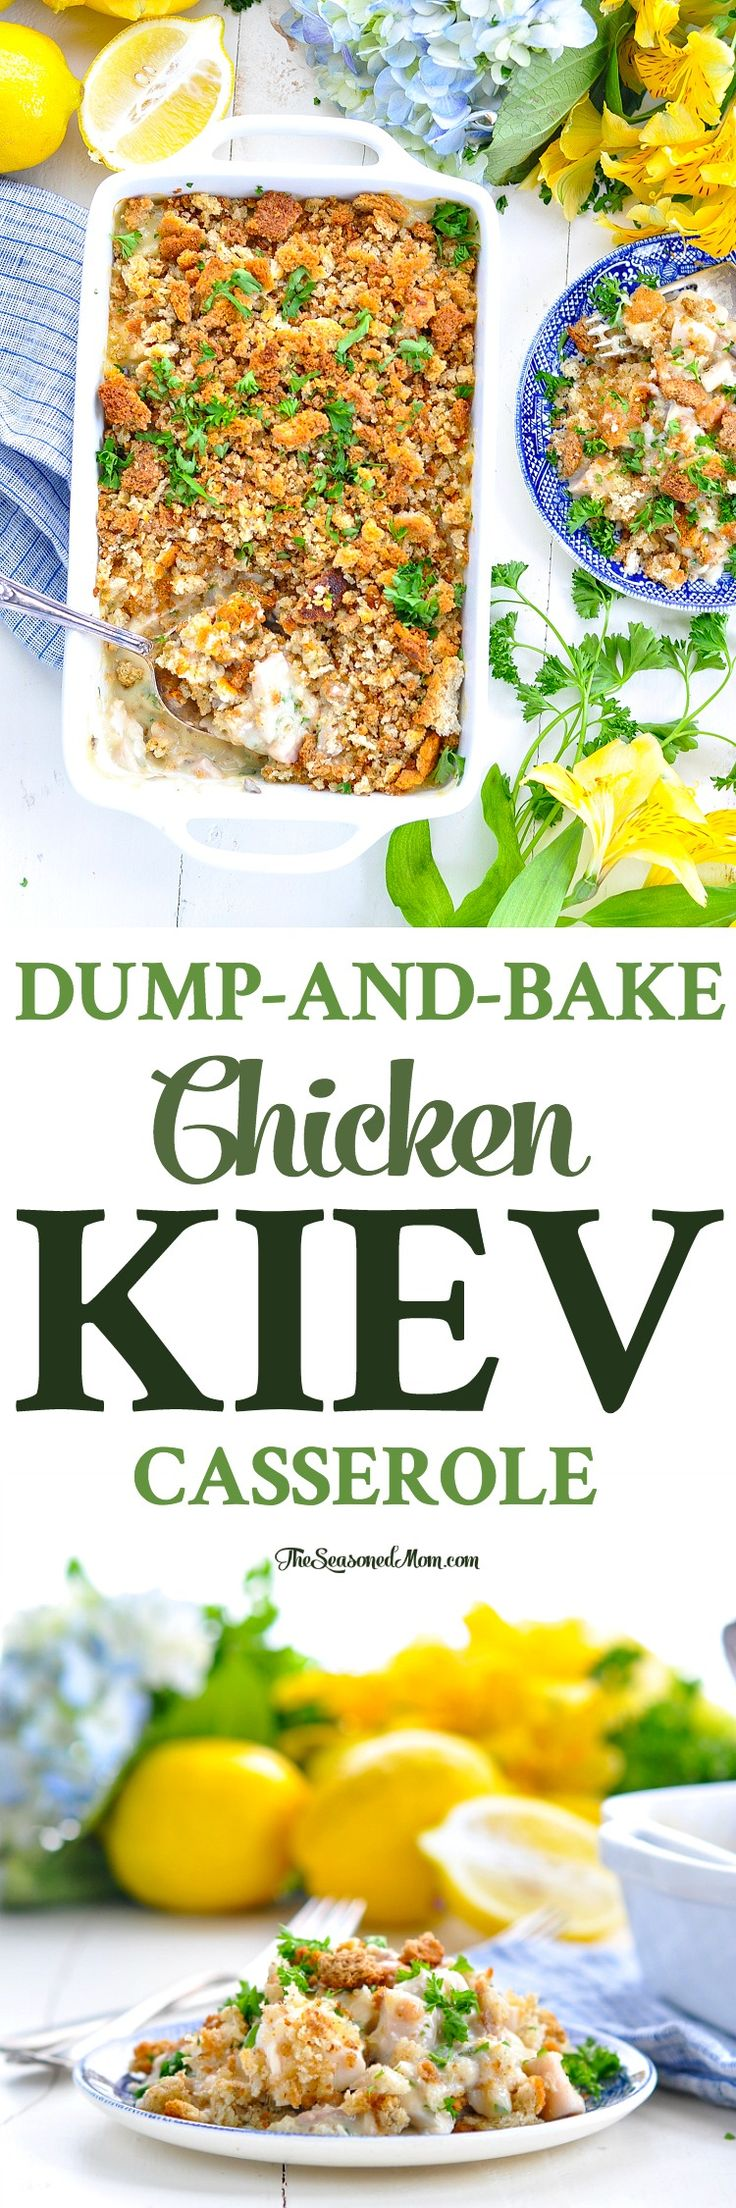 Long vertical image of a Dump-and-Bake Chicken Kiev Casserole